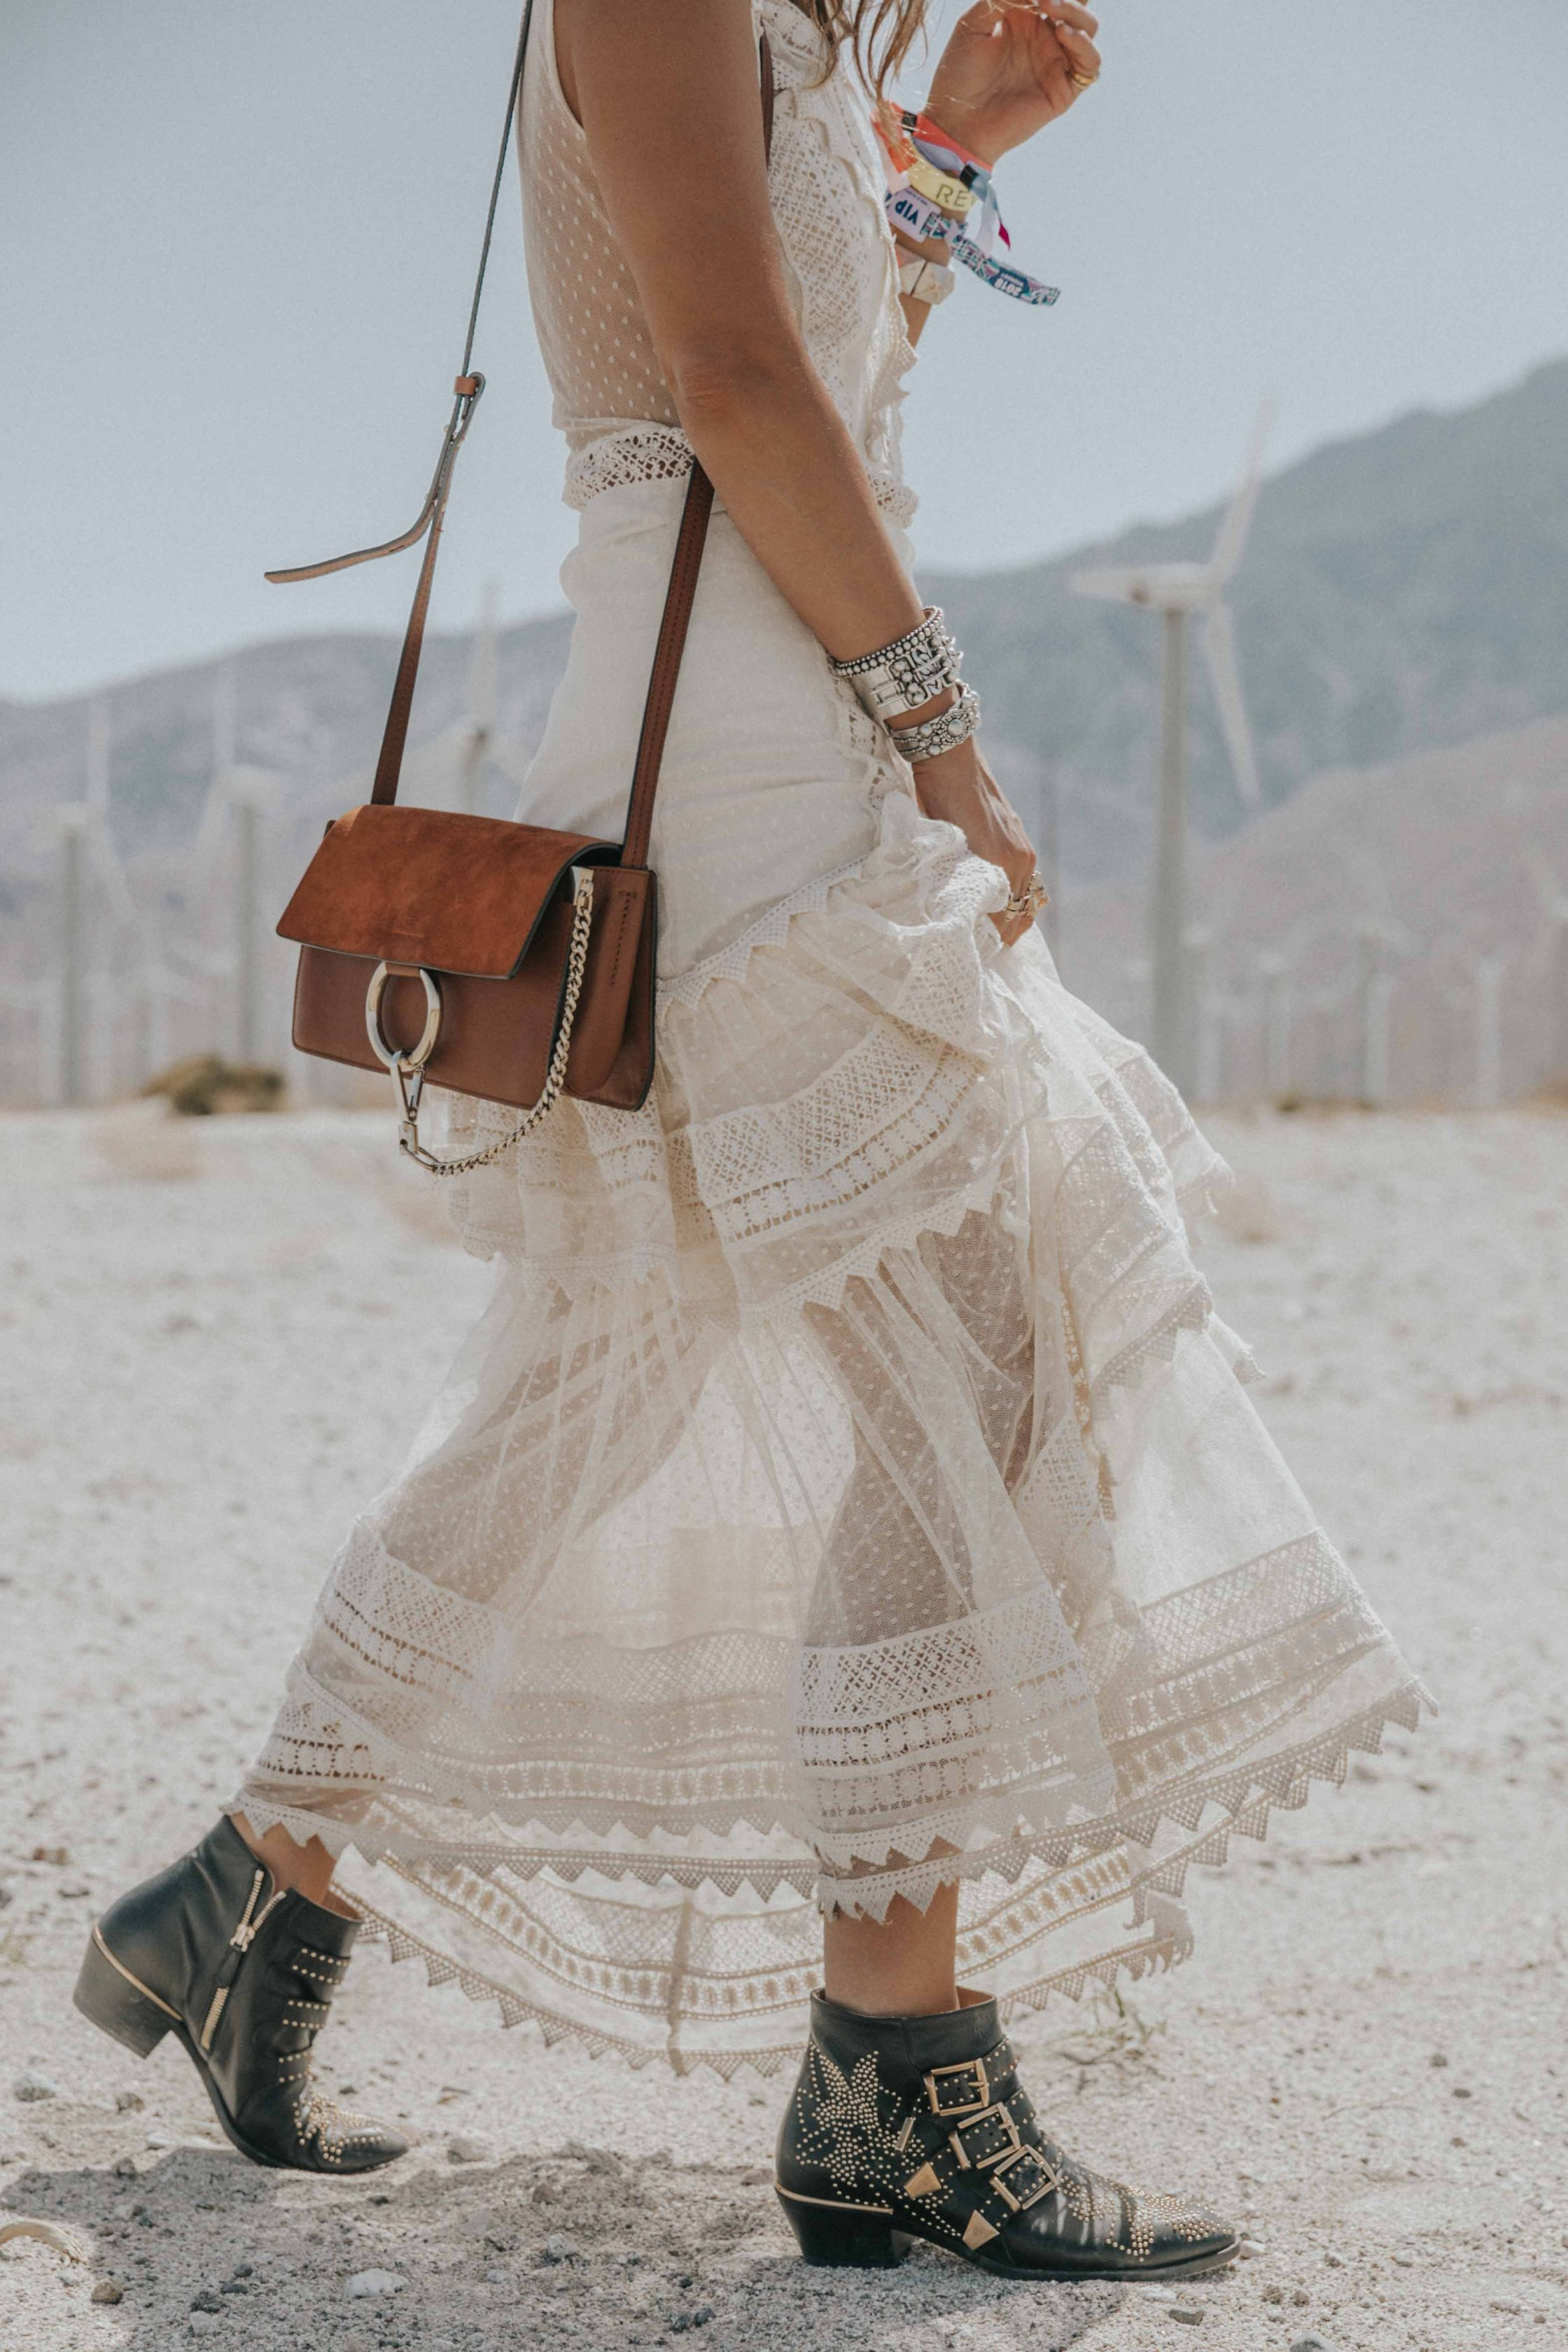 Collage Vintage at Coachella wearing a Long summer dress